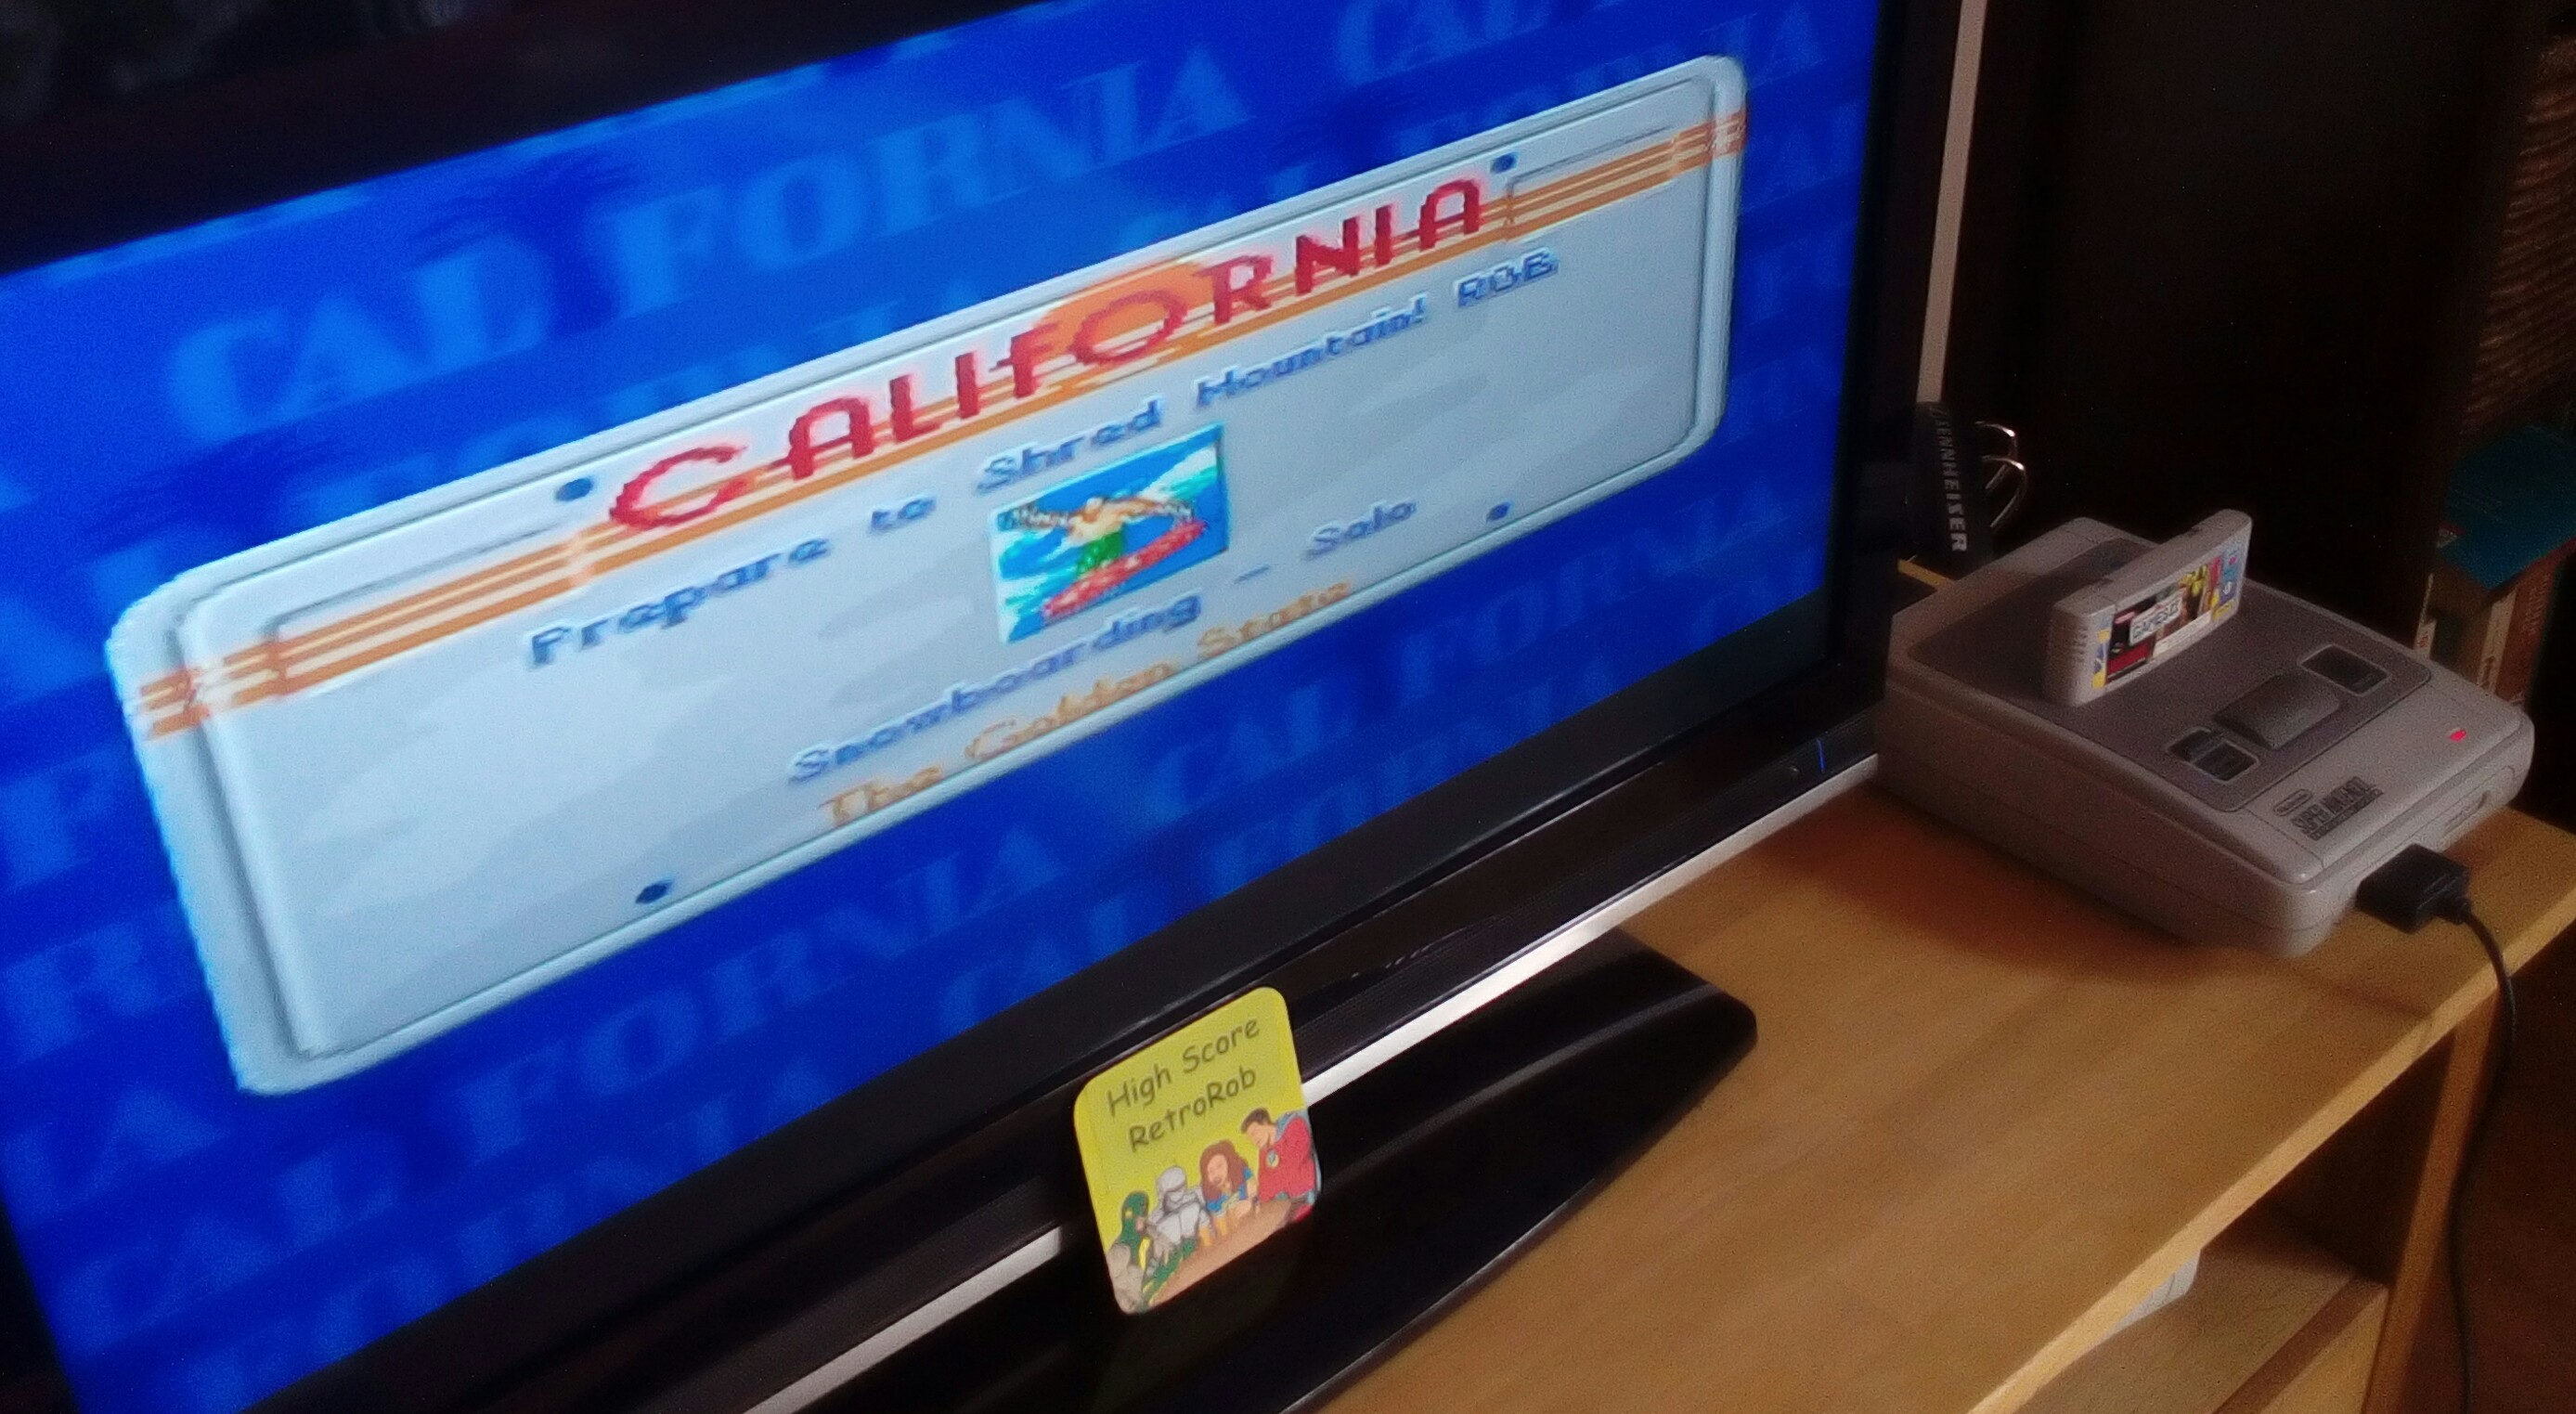 California Games II [Snowboarding] 16,000 points